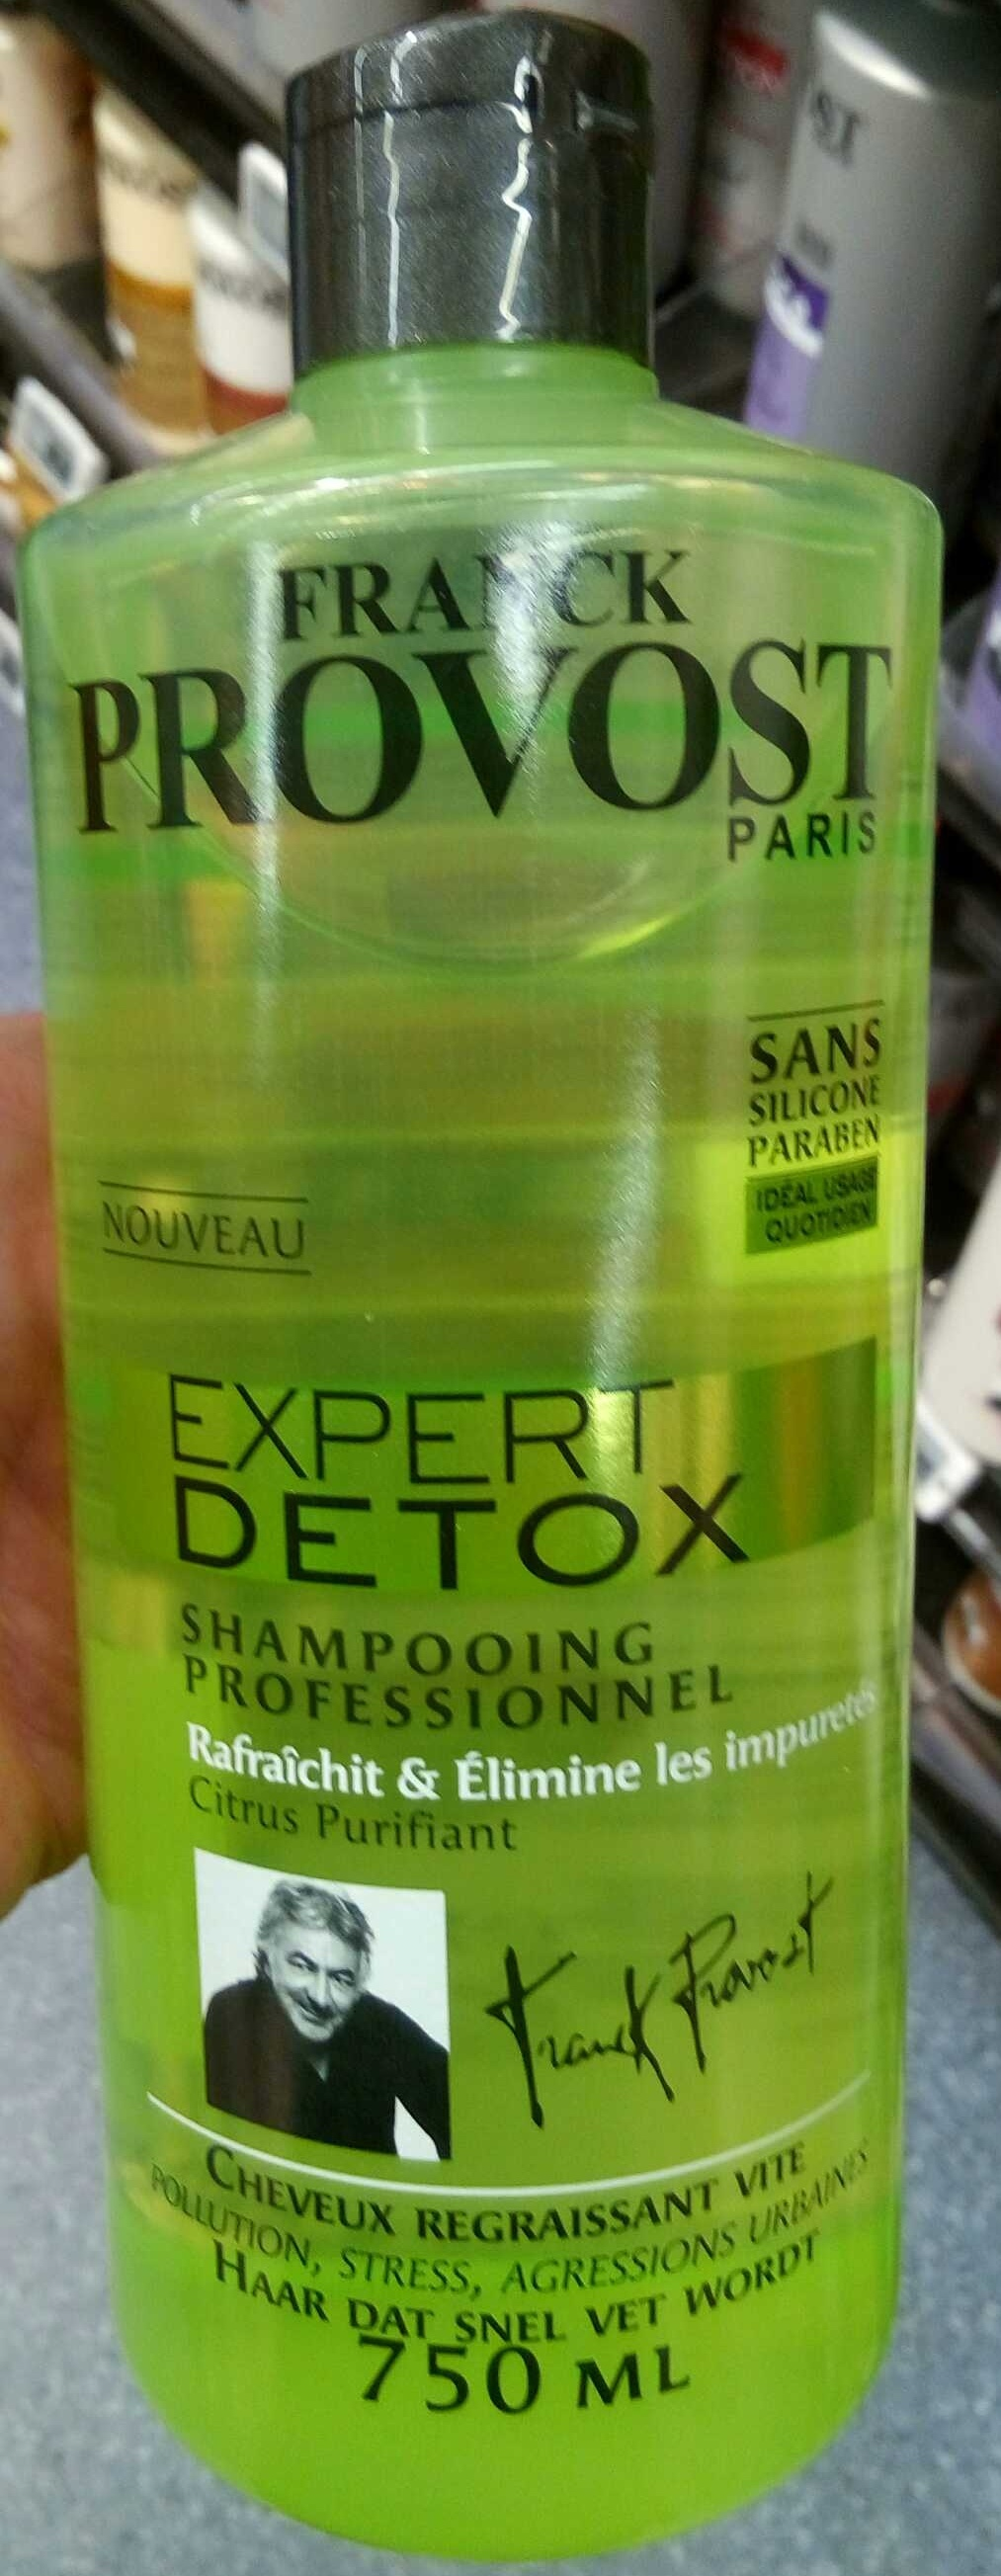 Expert Detox Shampooing professionnel - Product - fr